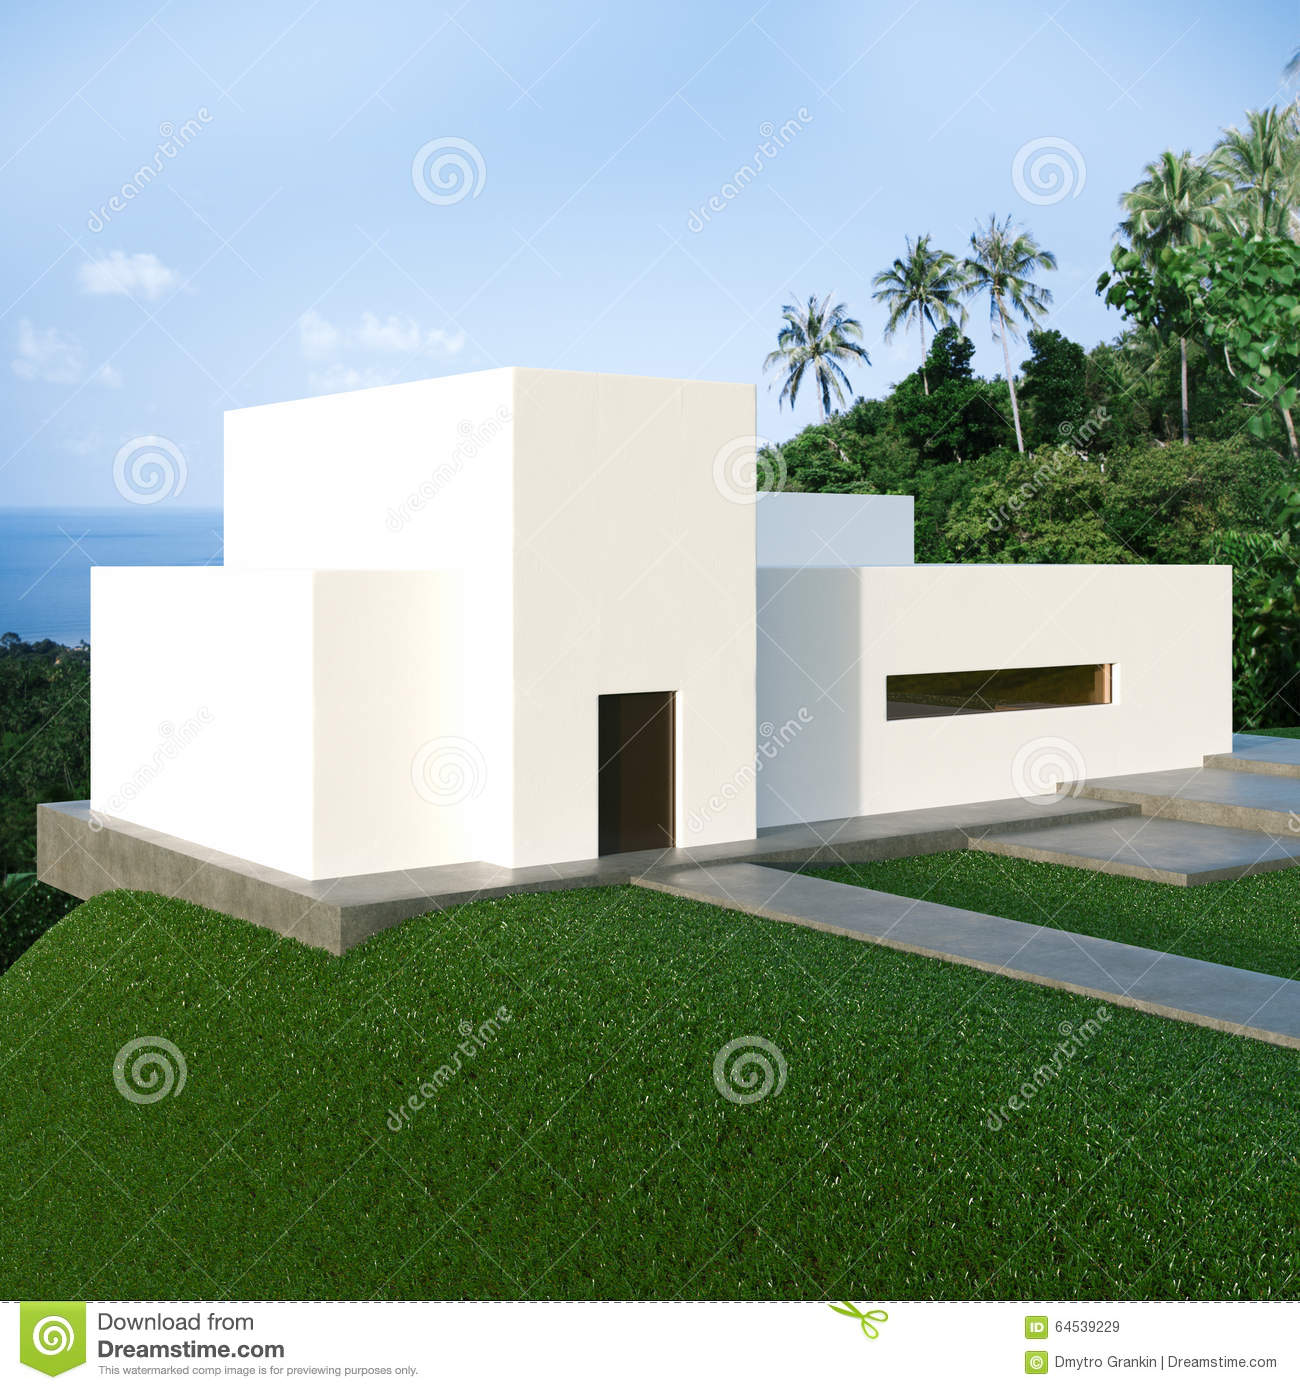 Energy efficient concrete modern house on the hill